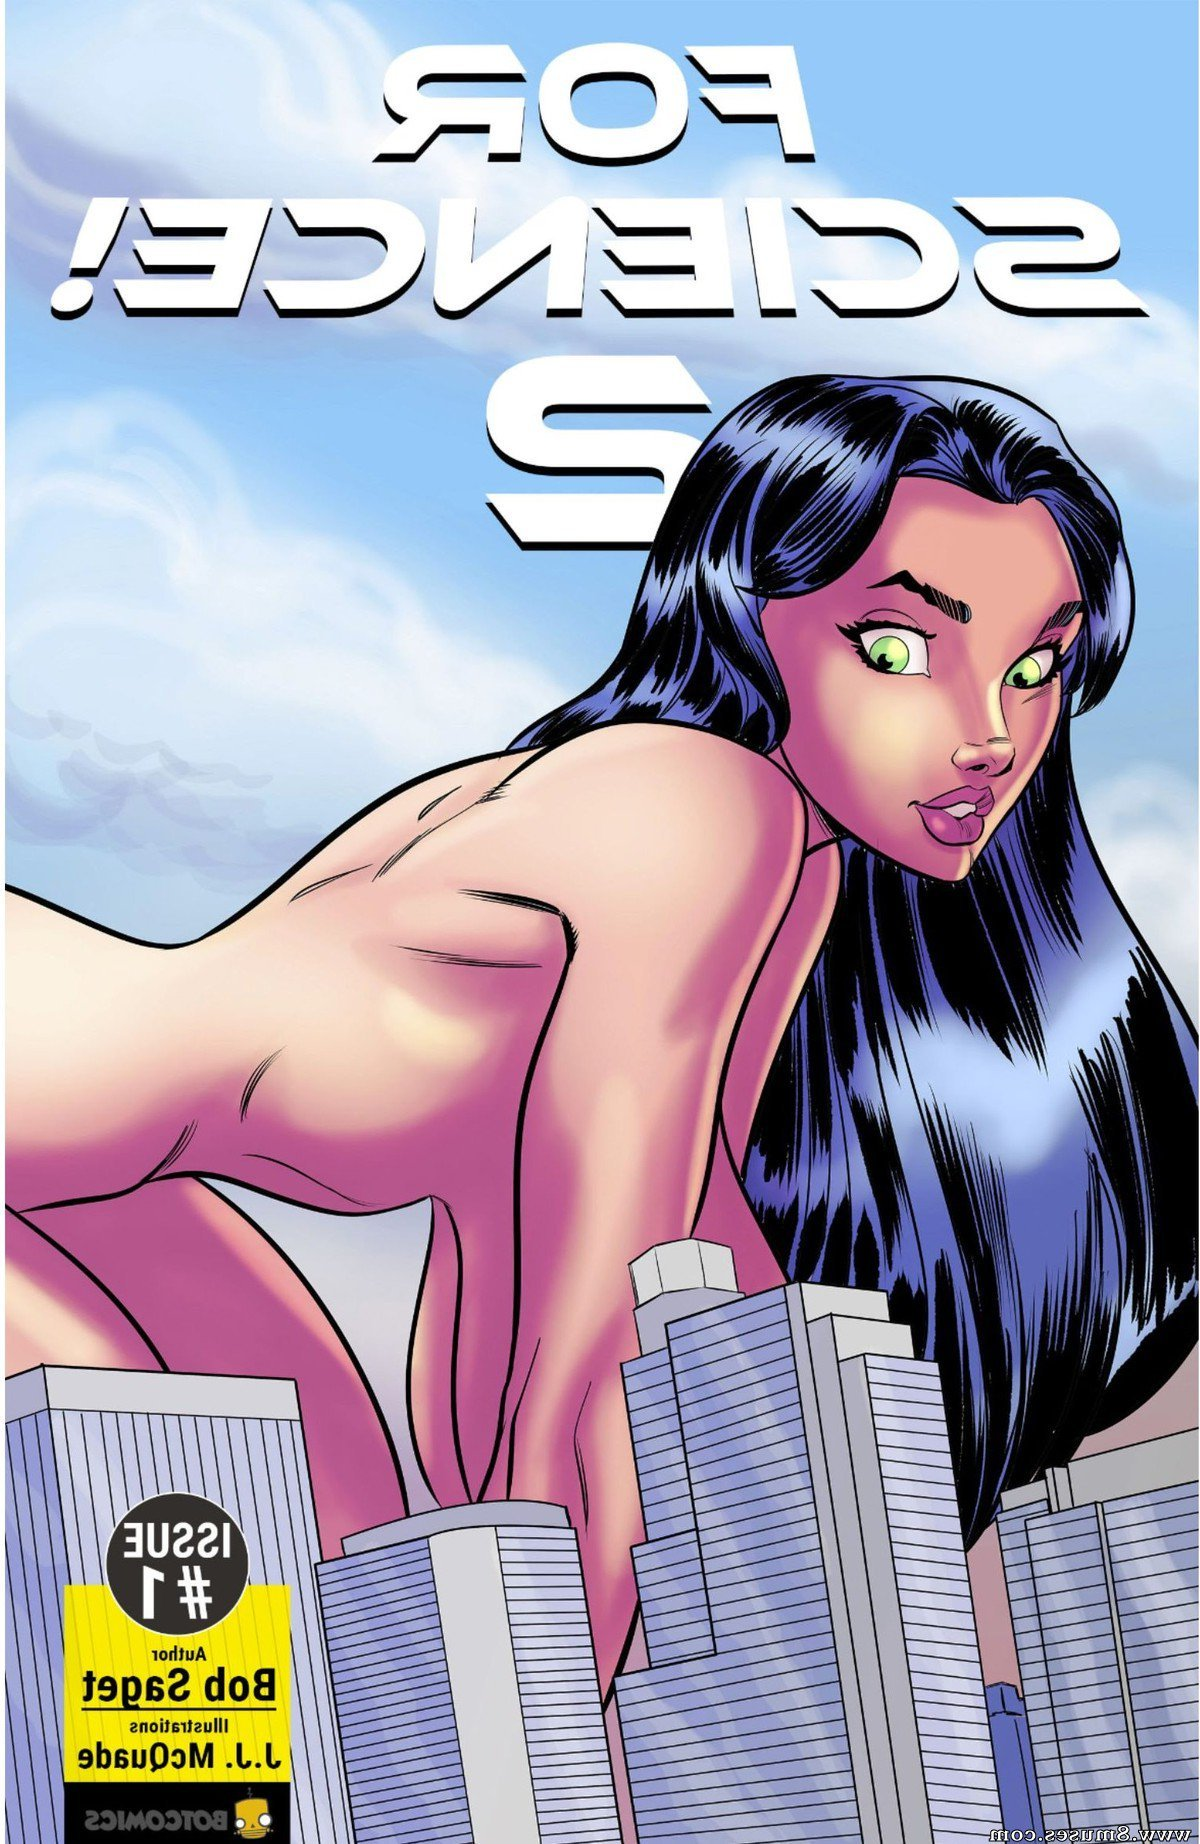 Giantess-Club-Comics/For-Science-2/Issue-1 For_Science_2_-_Issue_1.jpg